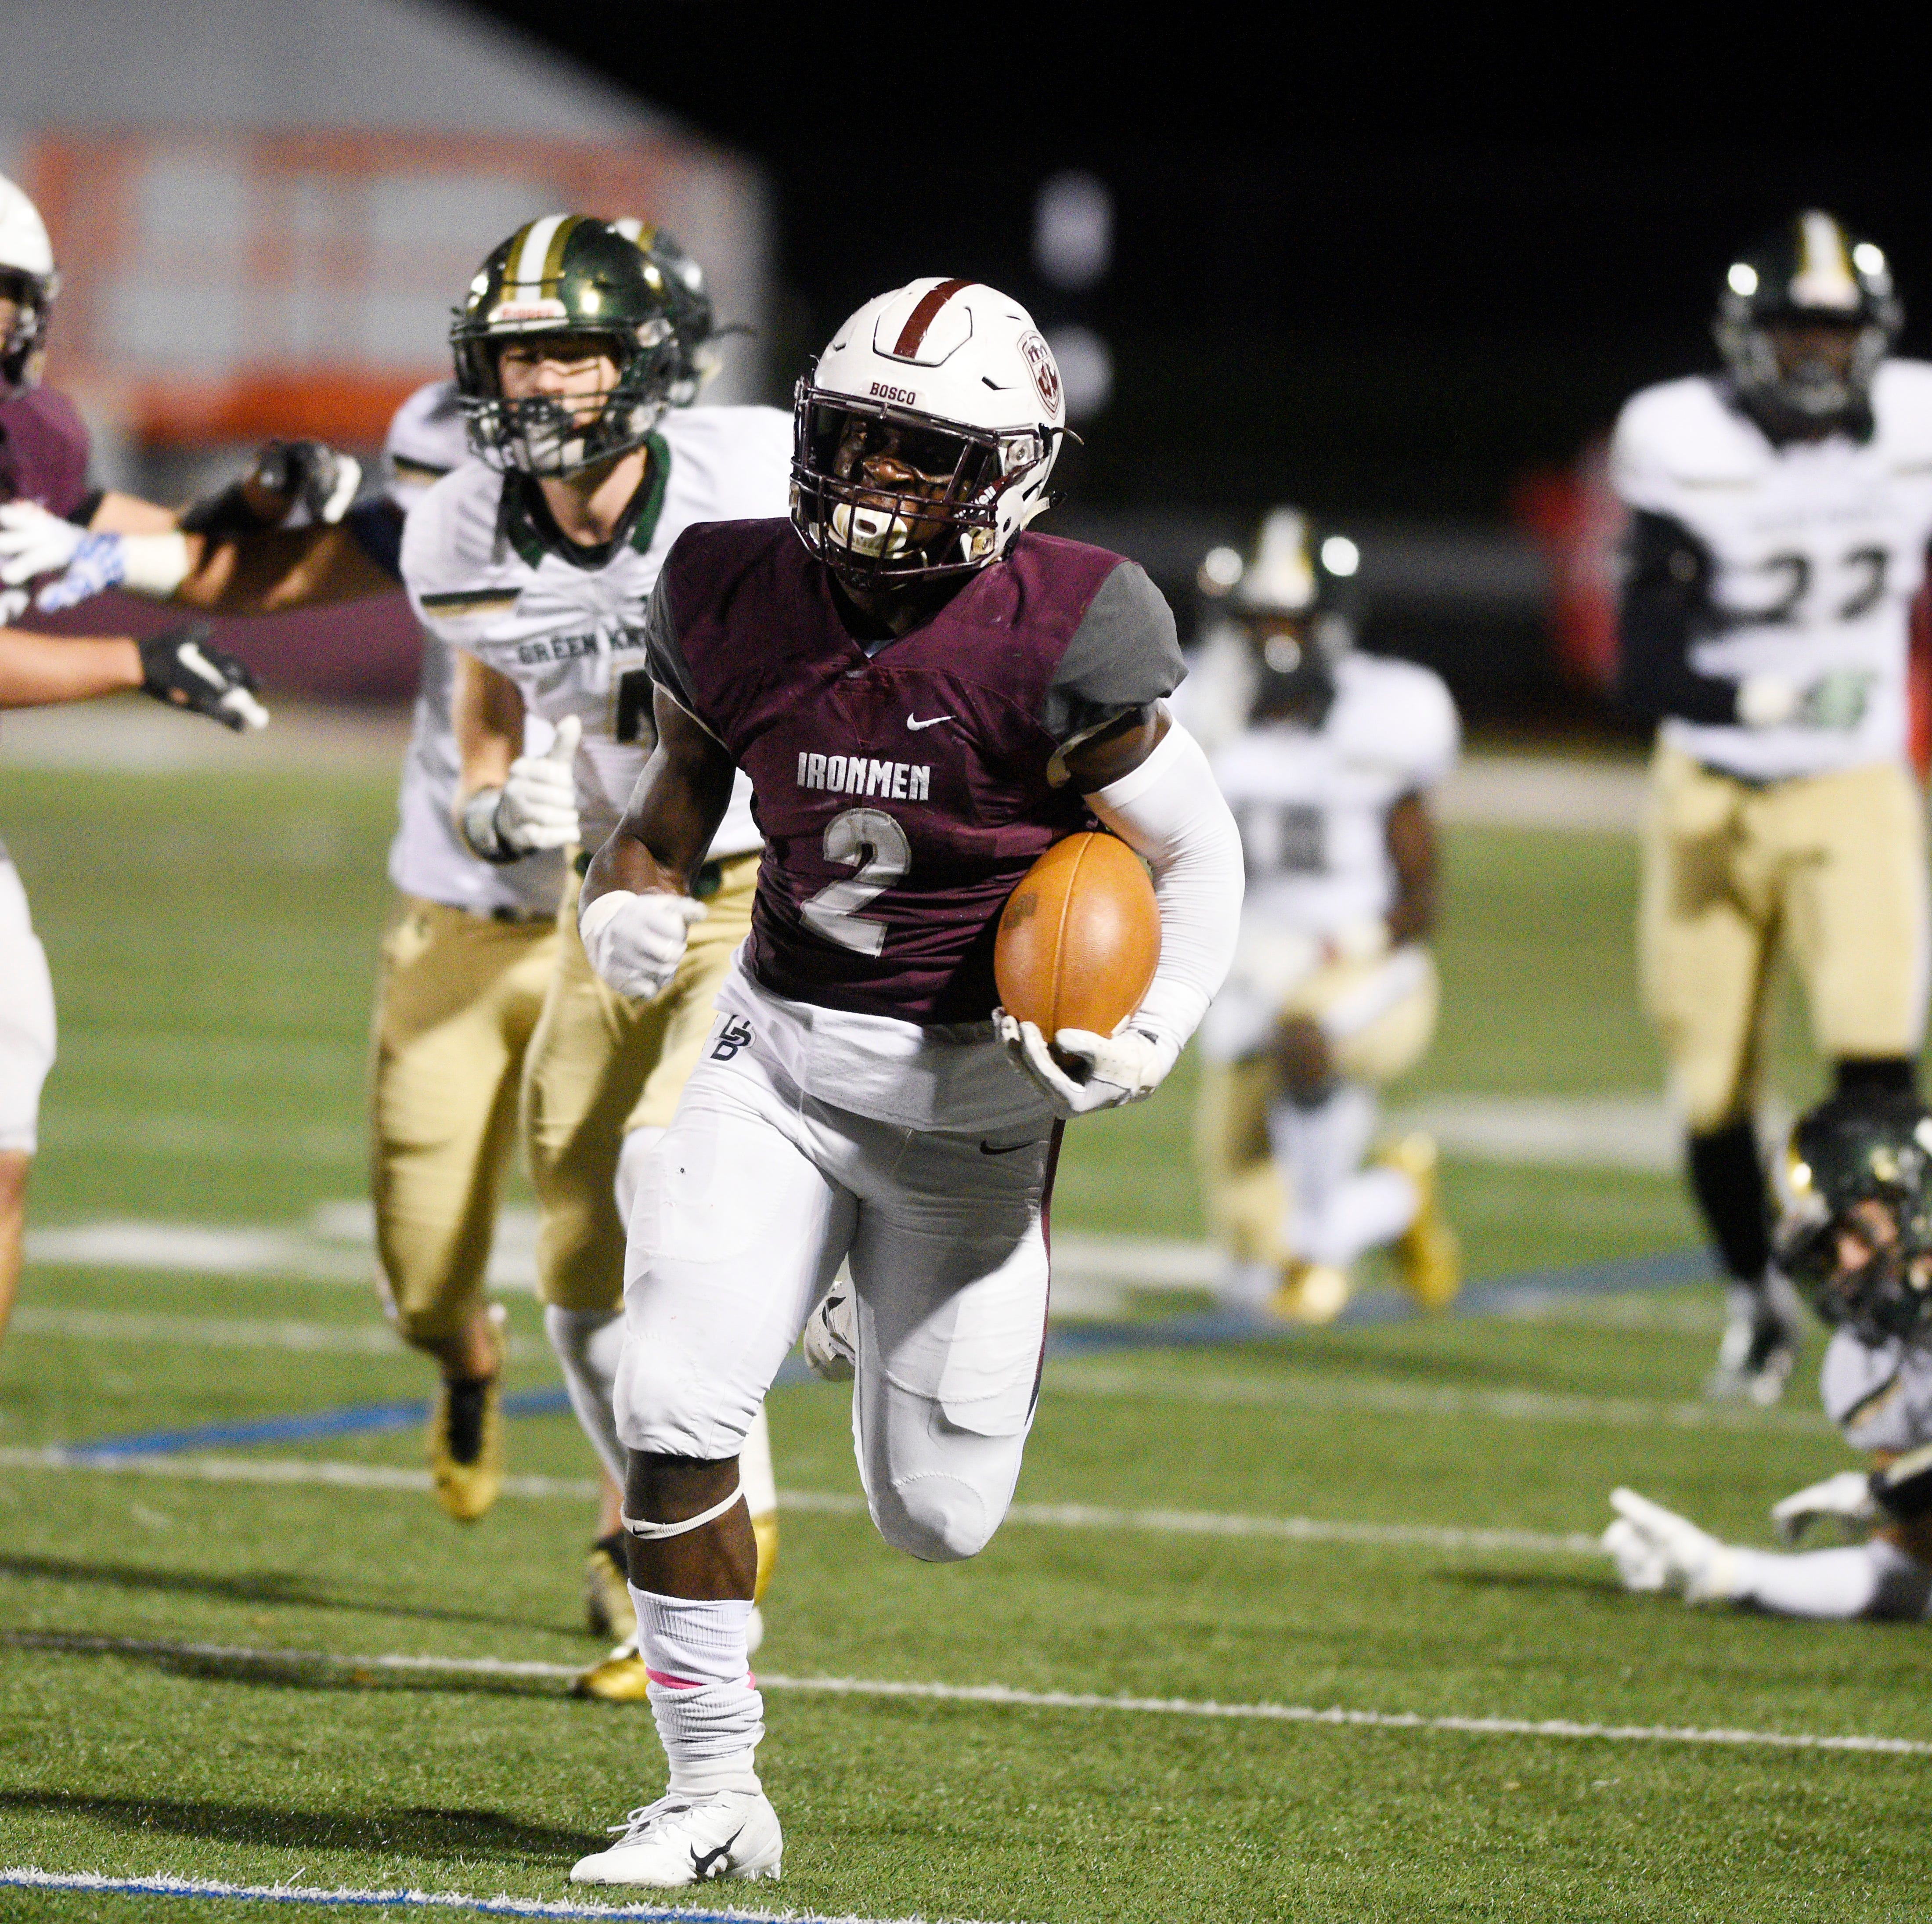 Vote for the North Jersey Football Player of the Week for Week 7